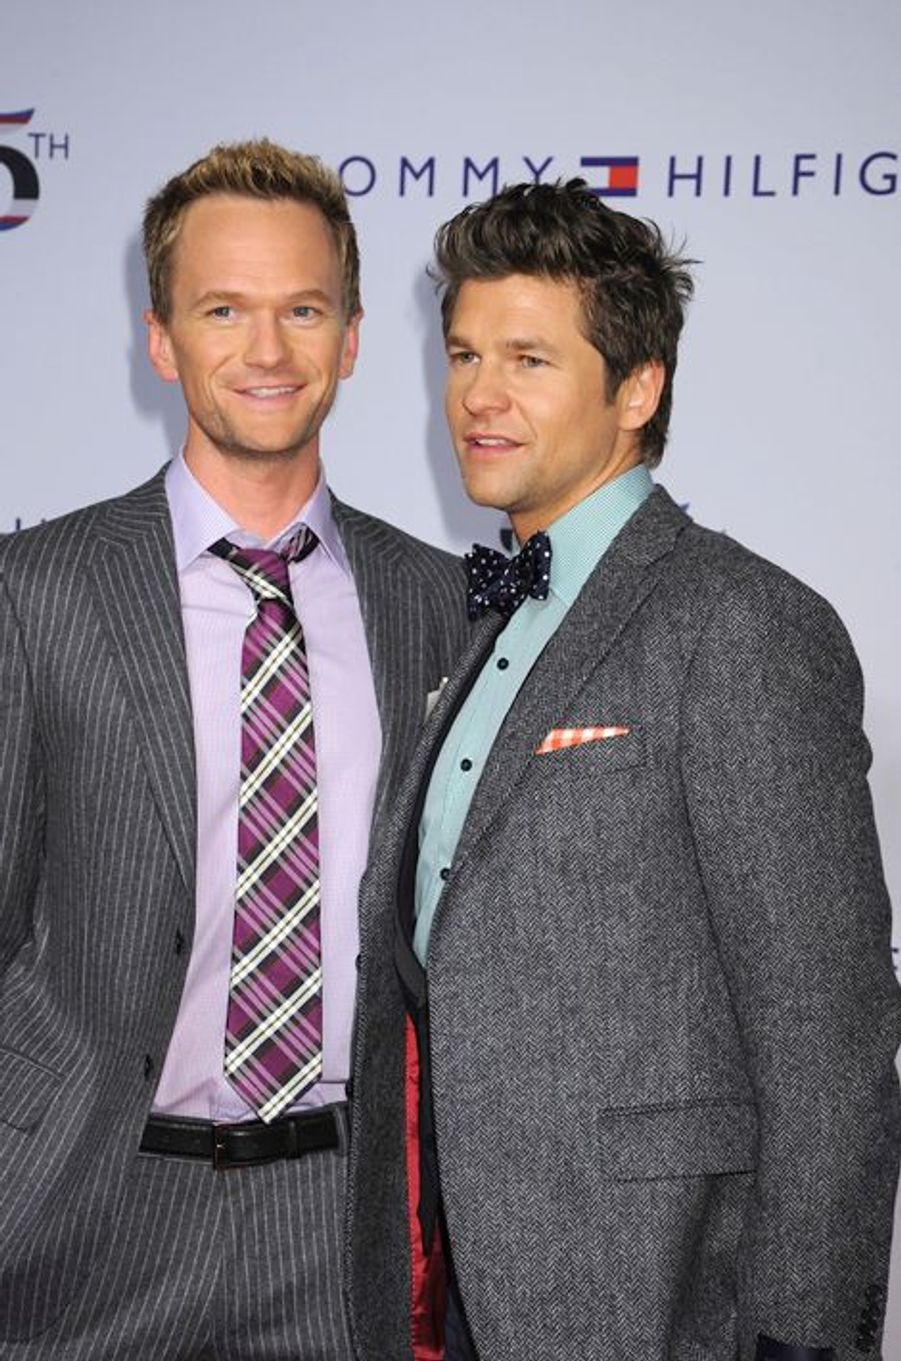 Neil Patrick Harris et David Burtka à New York, le 12 septembre 2010.